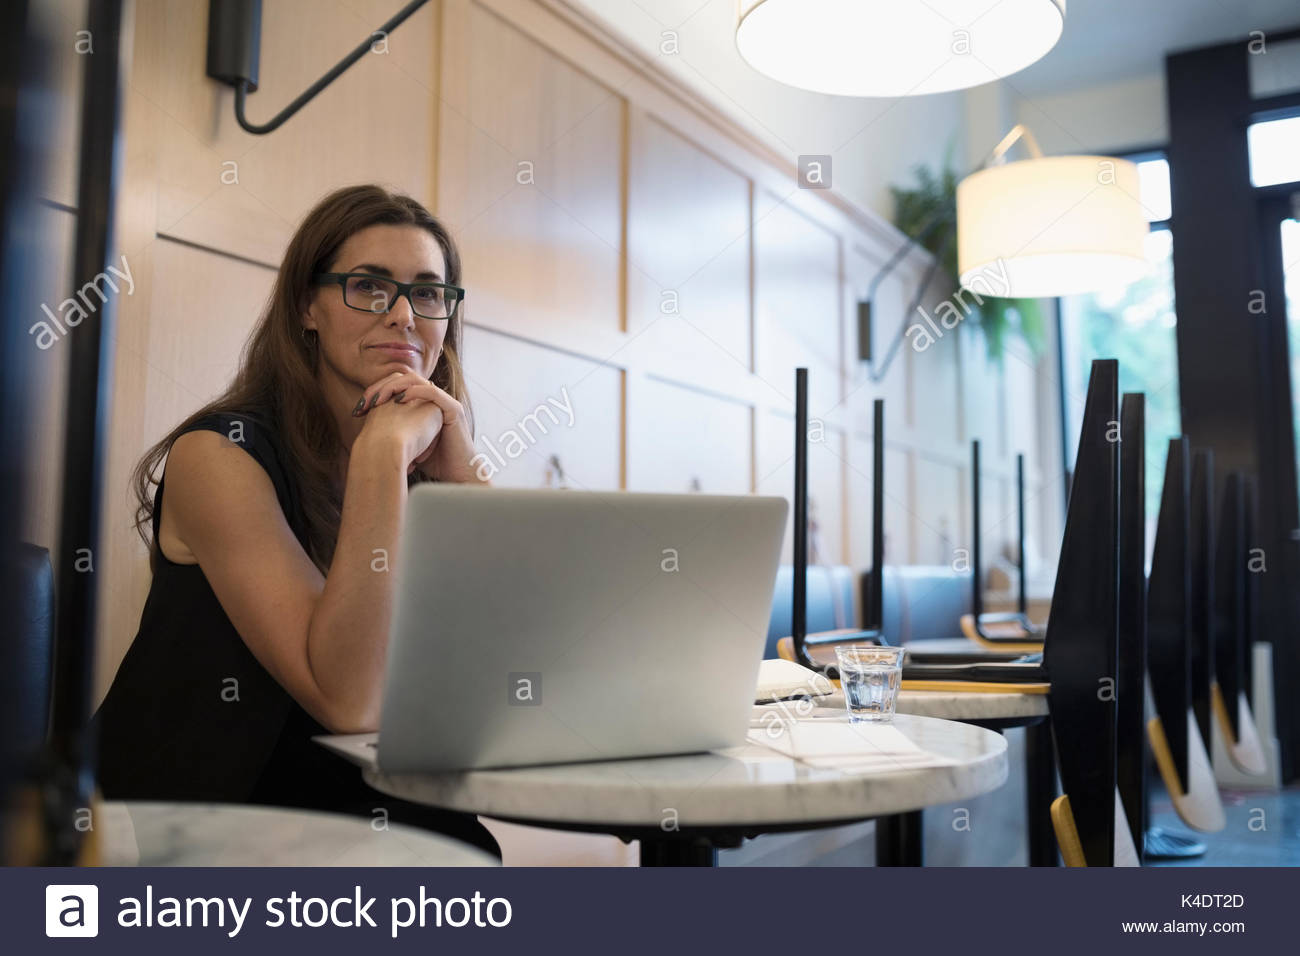 Portrait confident female cafe owner working at laptop at table - Stock Image